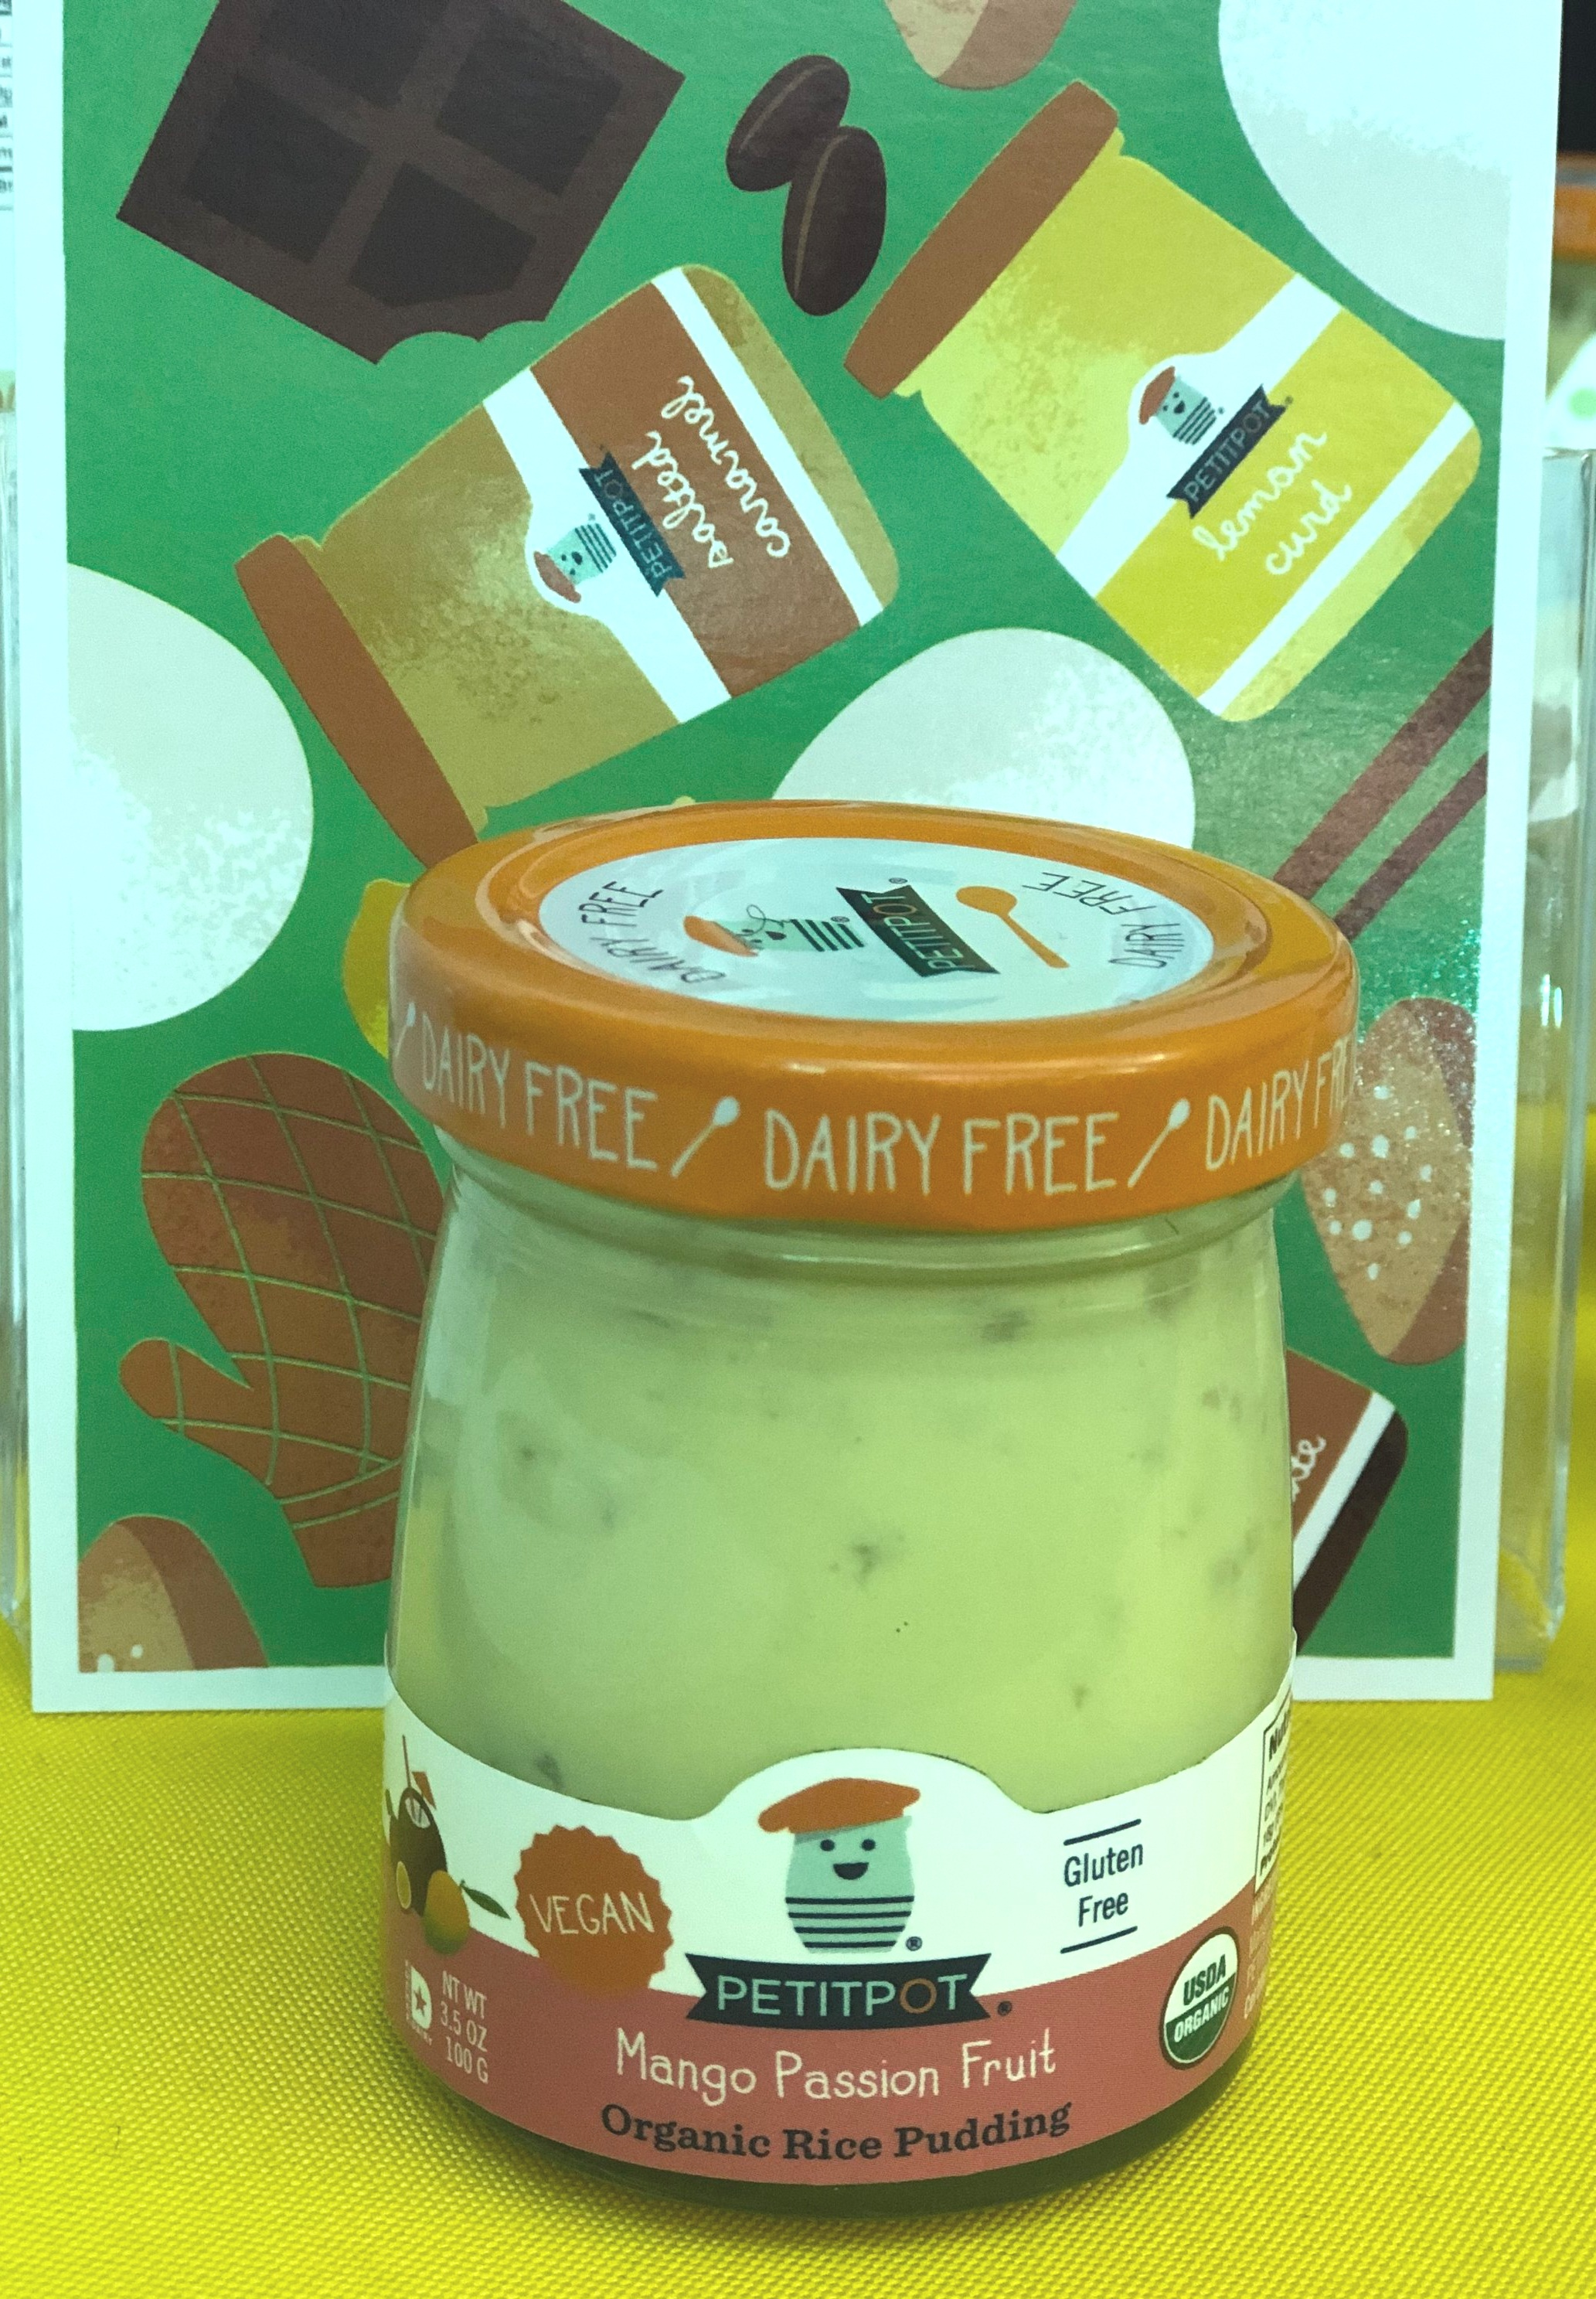 TREND 4: DAIRY FREE